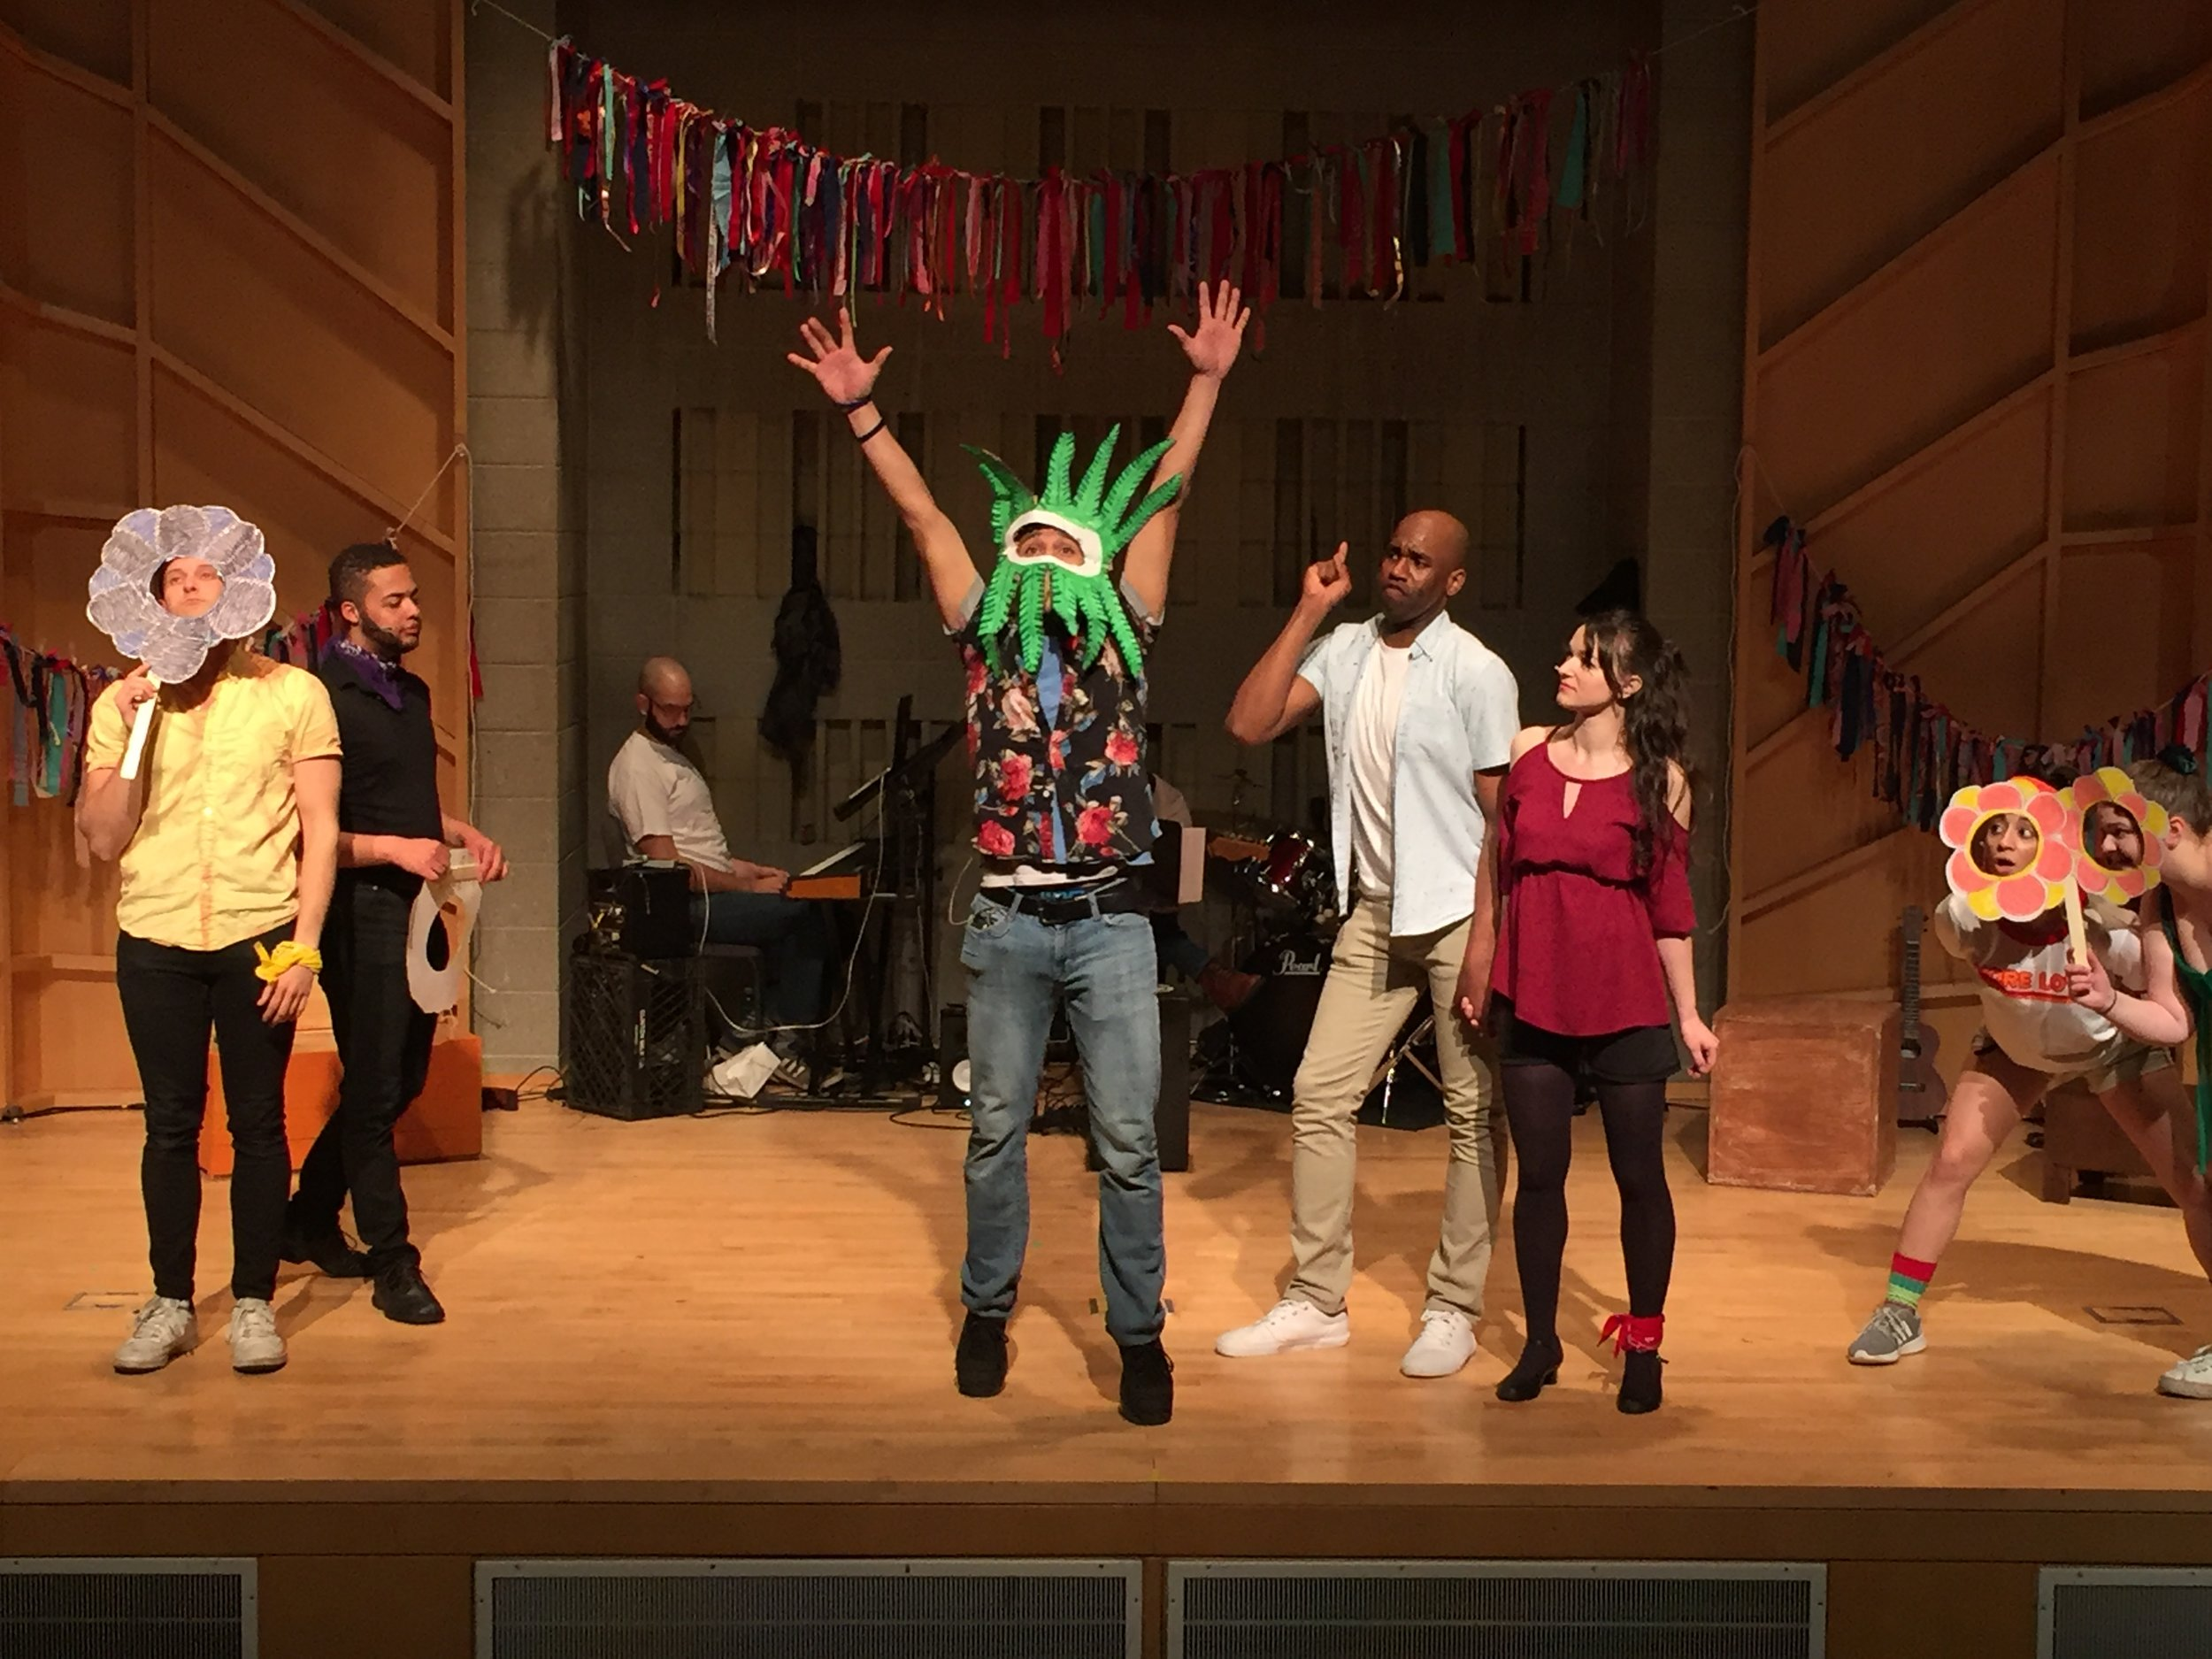 The company of GODSPELL (left to right) Jordan Boyd, Dante Hill, Joshua Oxyer, James Edward Temple, Katie Brandenburg, Kelly Grago, Ariel Silverstein